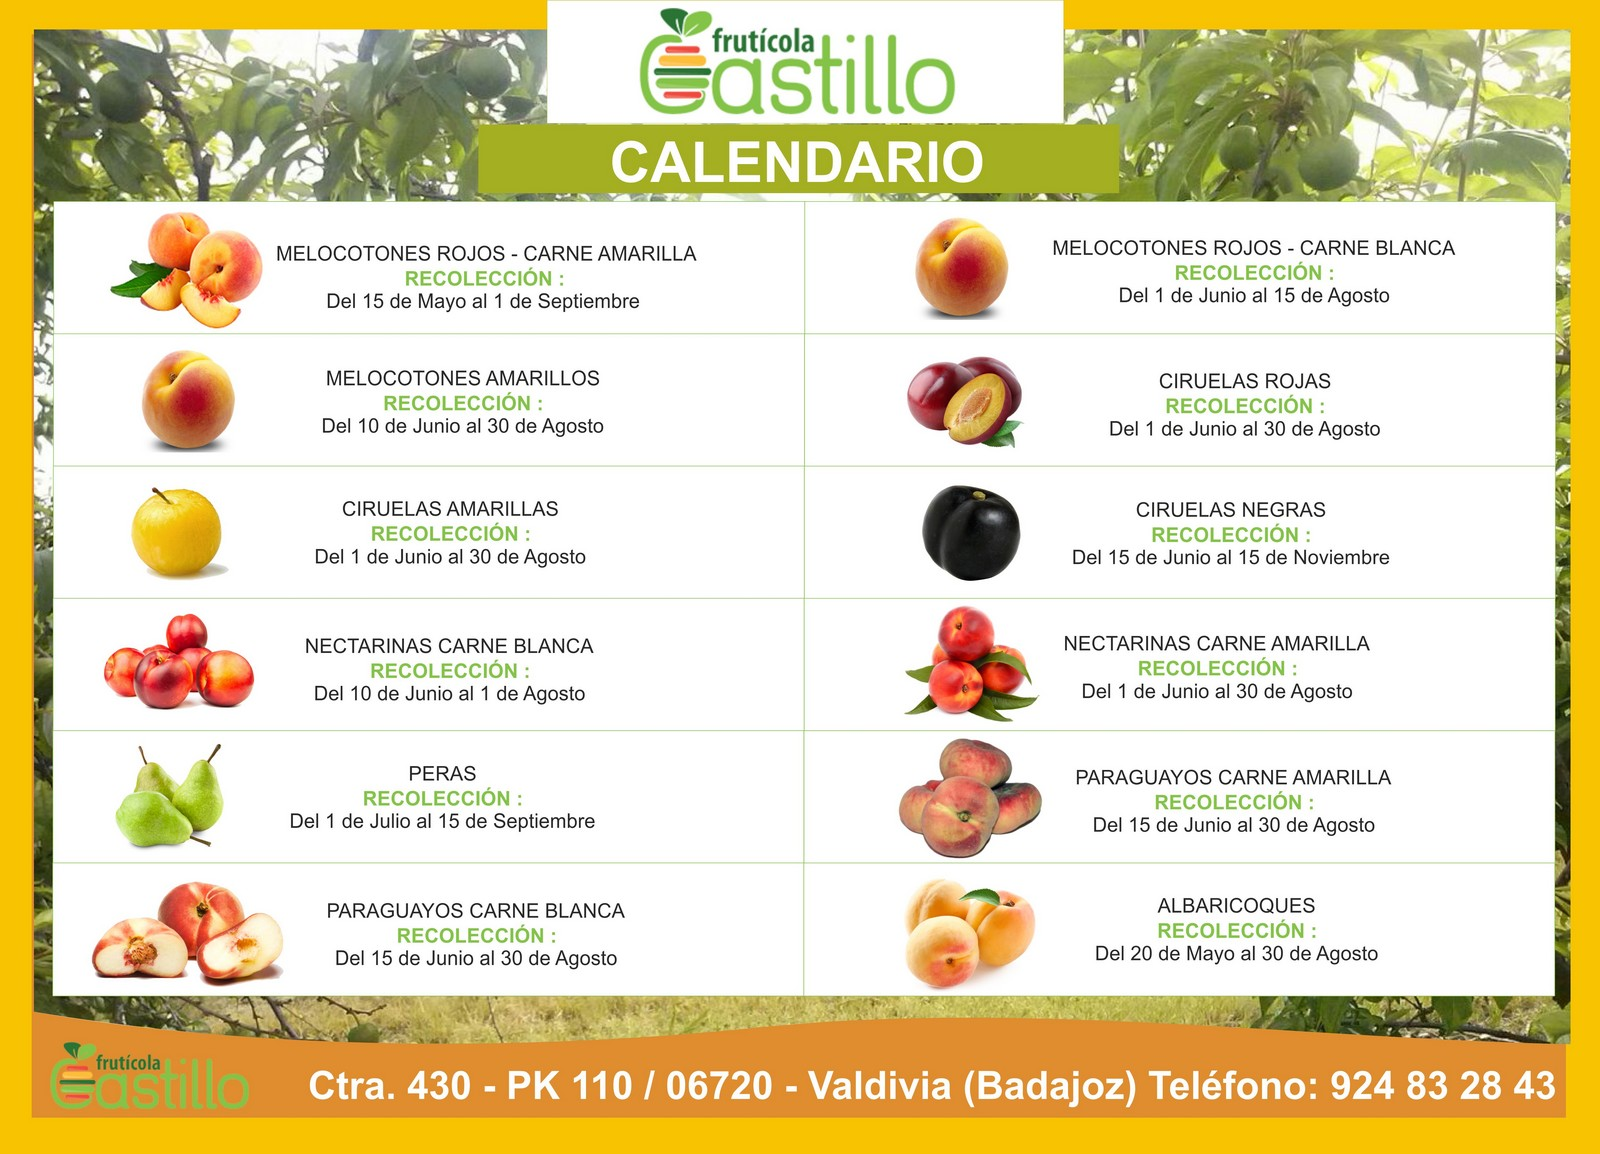 CALENDARIO-FRUTICOLA-CASTILLO